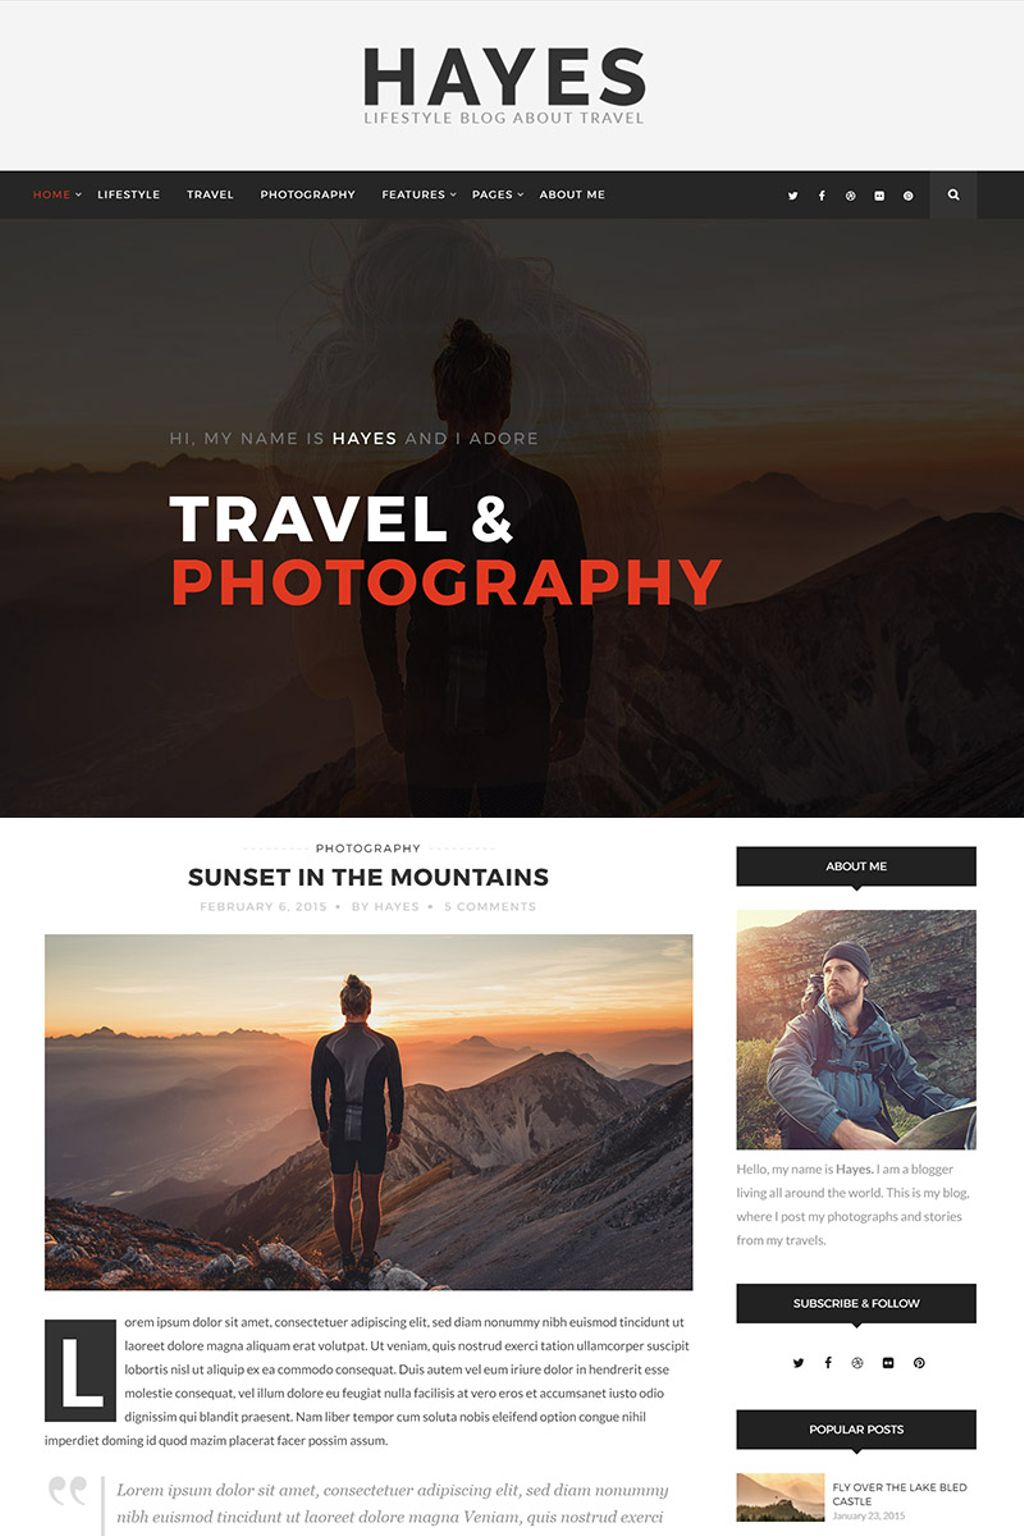 Website Design Template 65620 - theme bold clean creative fashion food hipster instagram lifestyle minimal personal photography travel wordpress grid masonry sidebar fullwidth mountains